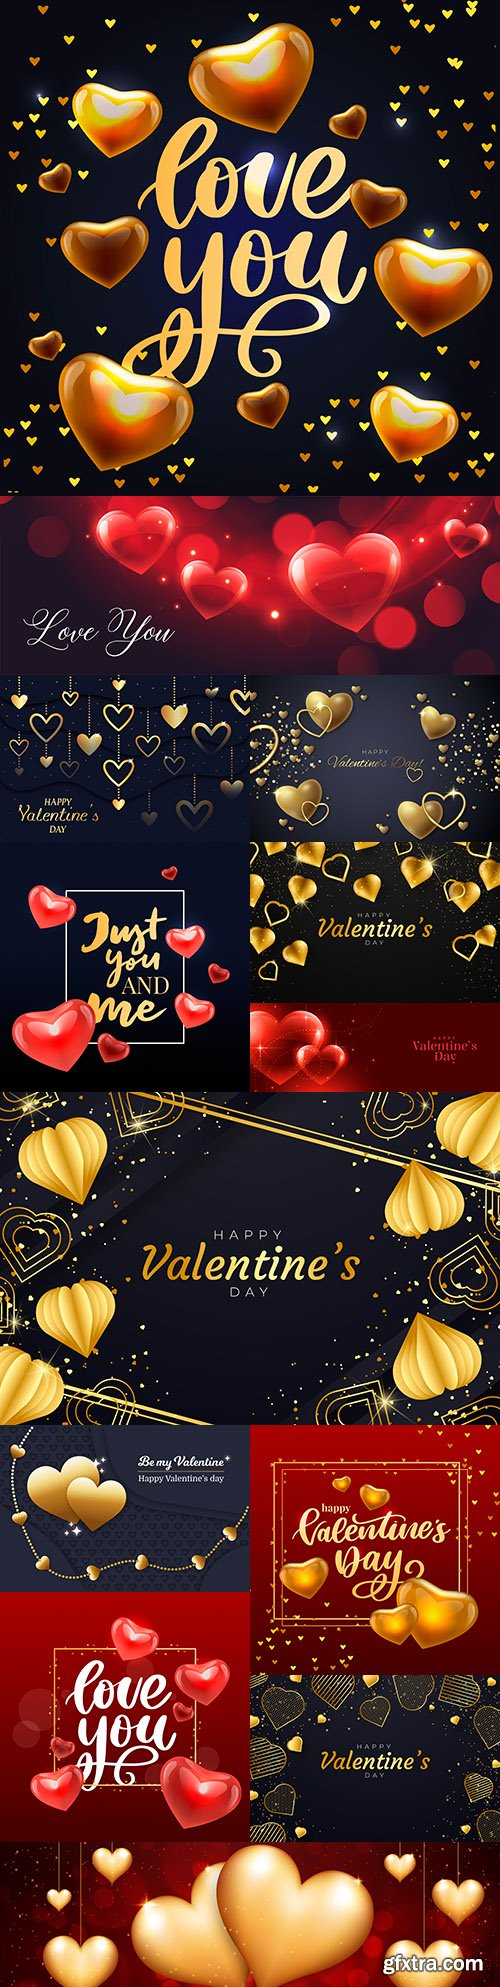 Valentine's Day romantic golden hearts and elements illustration